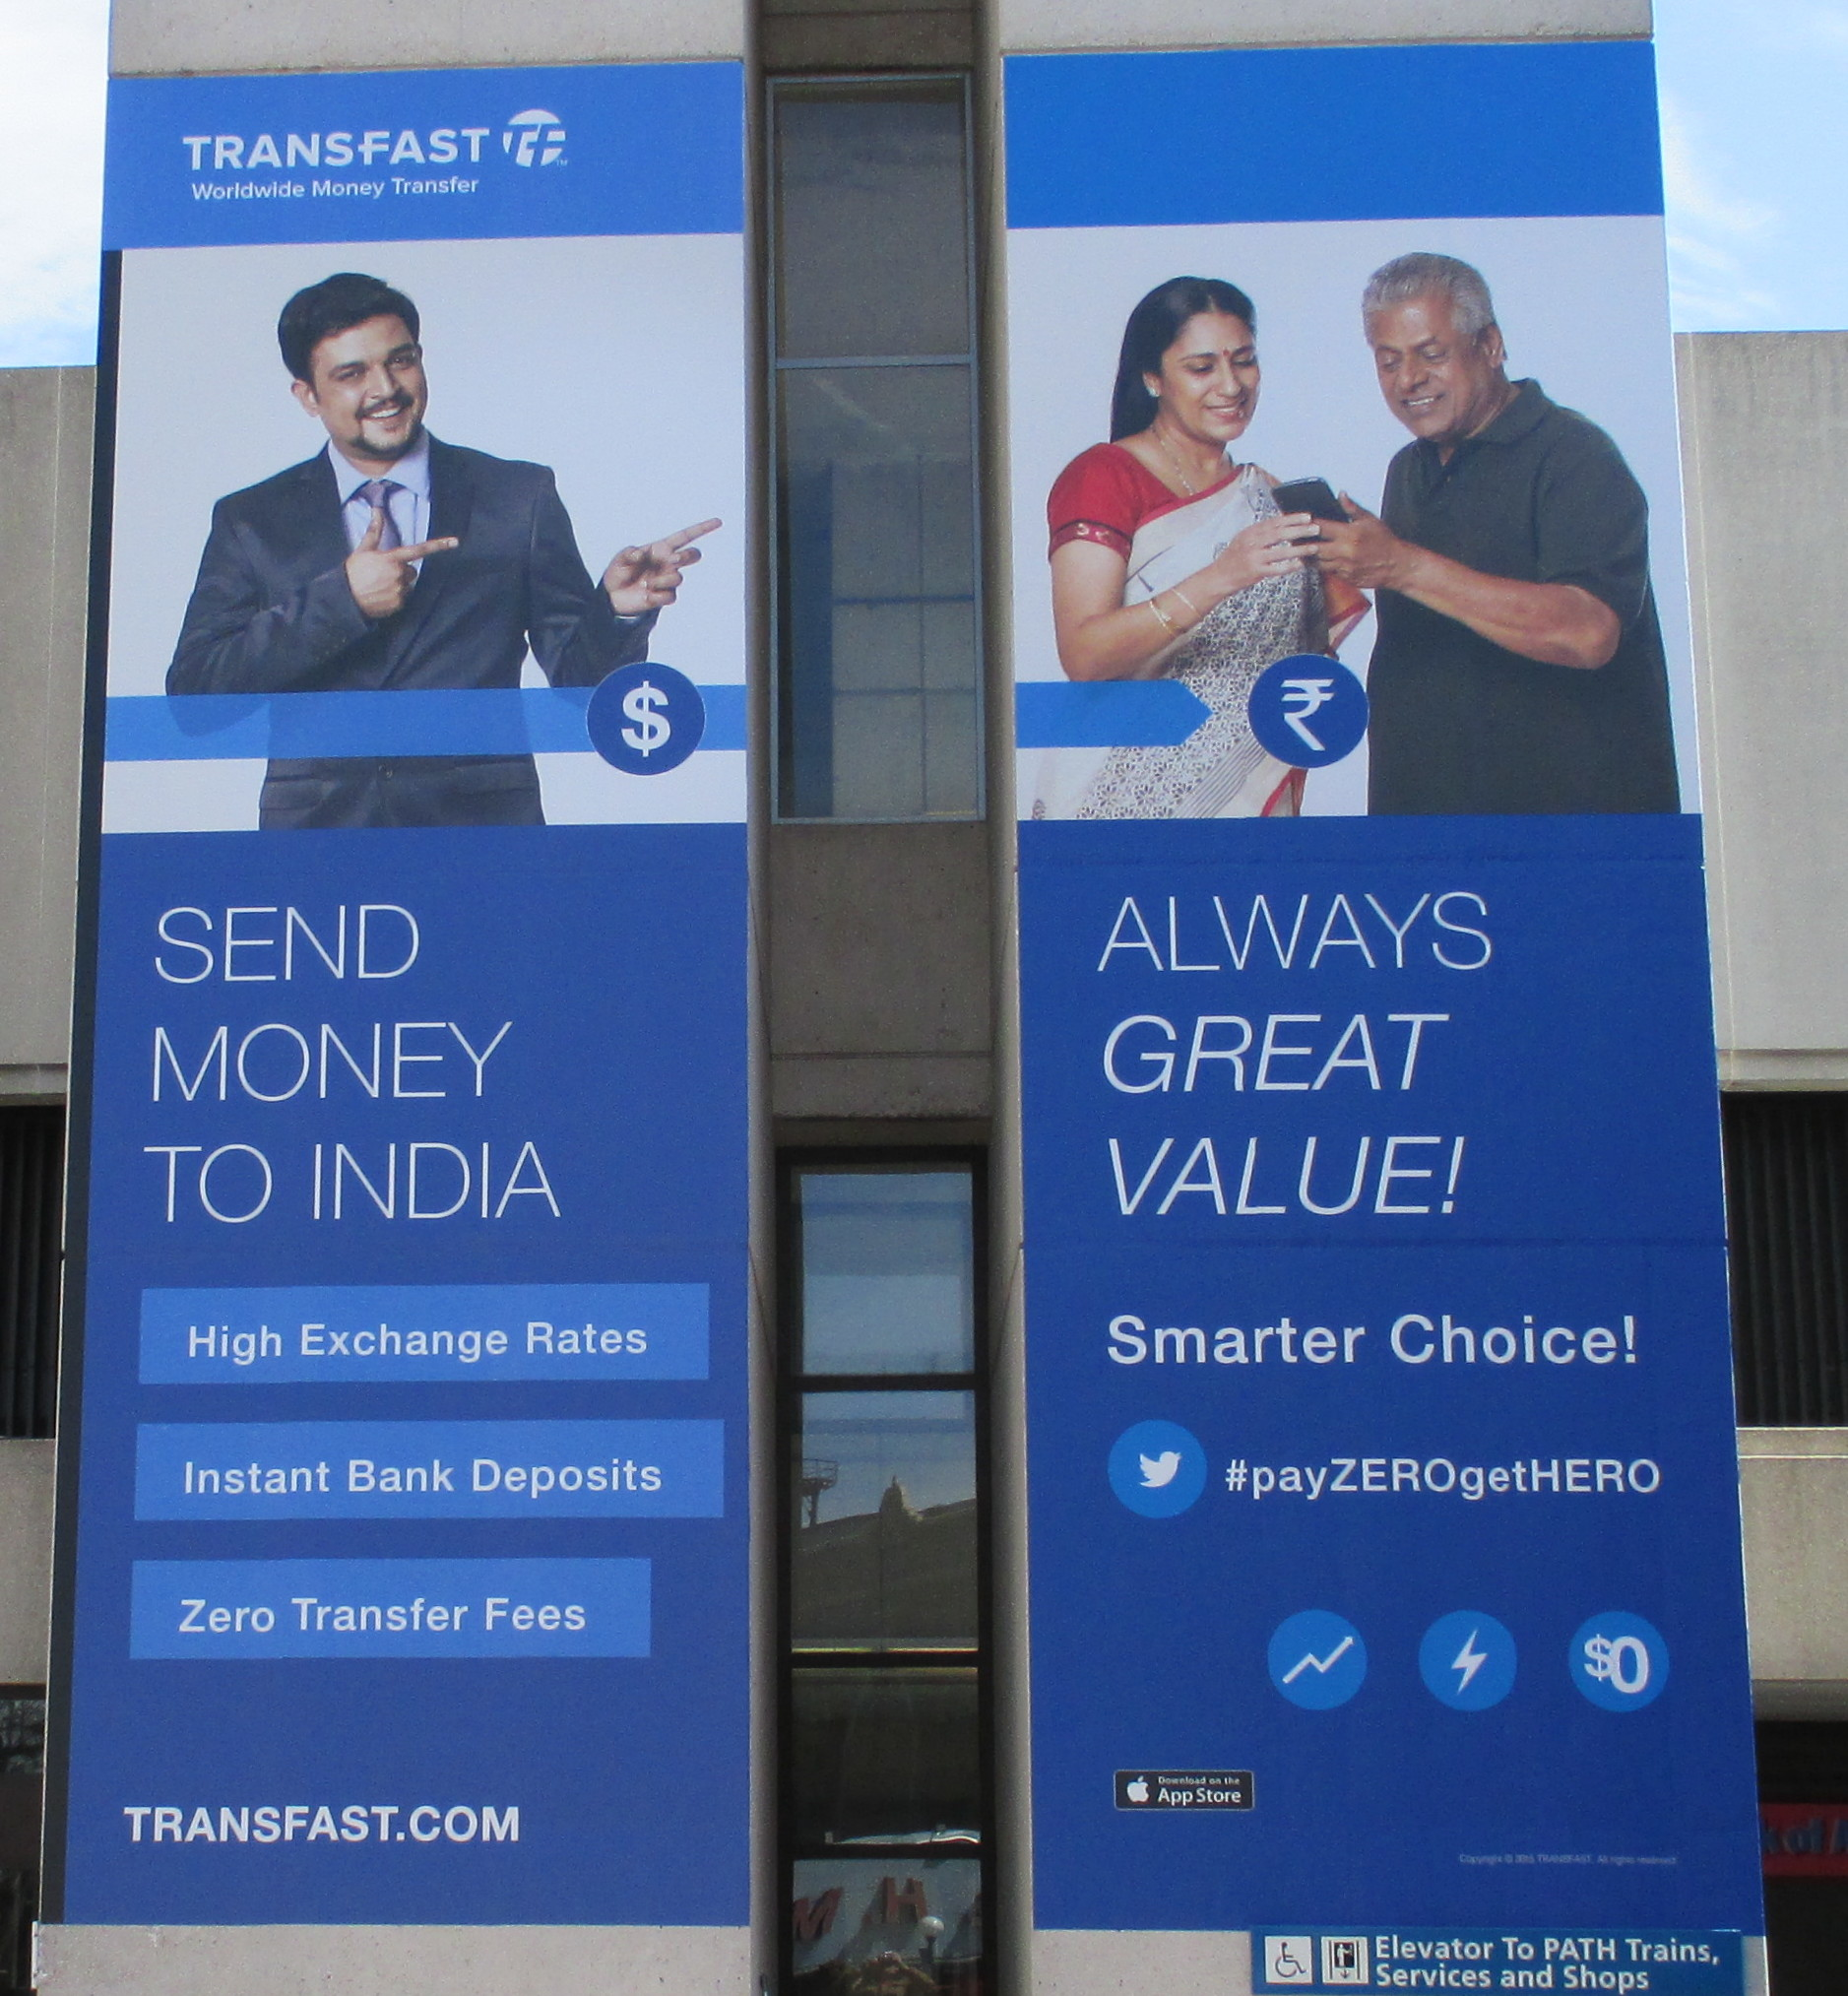 Transfast money transfer ads in New Jersey for sending money from USA to India, April 13, 2015